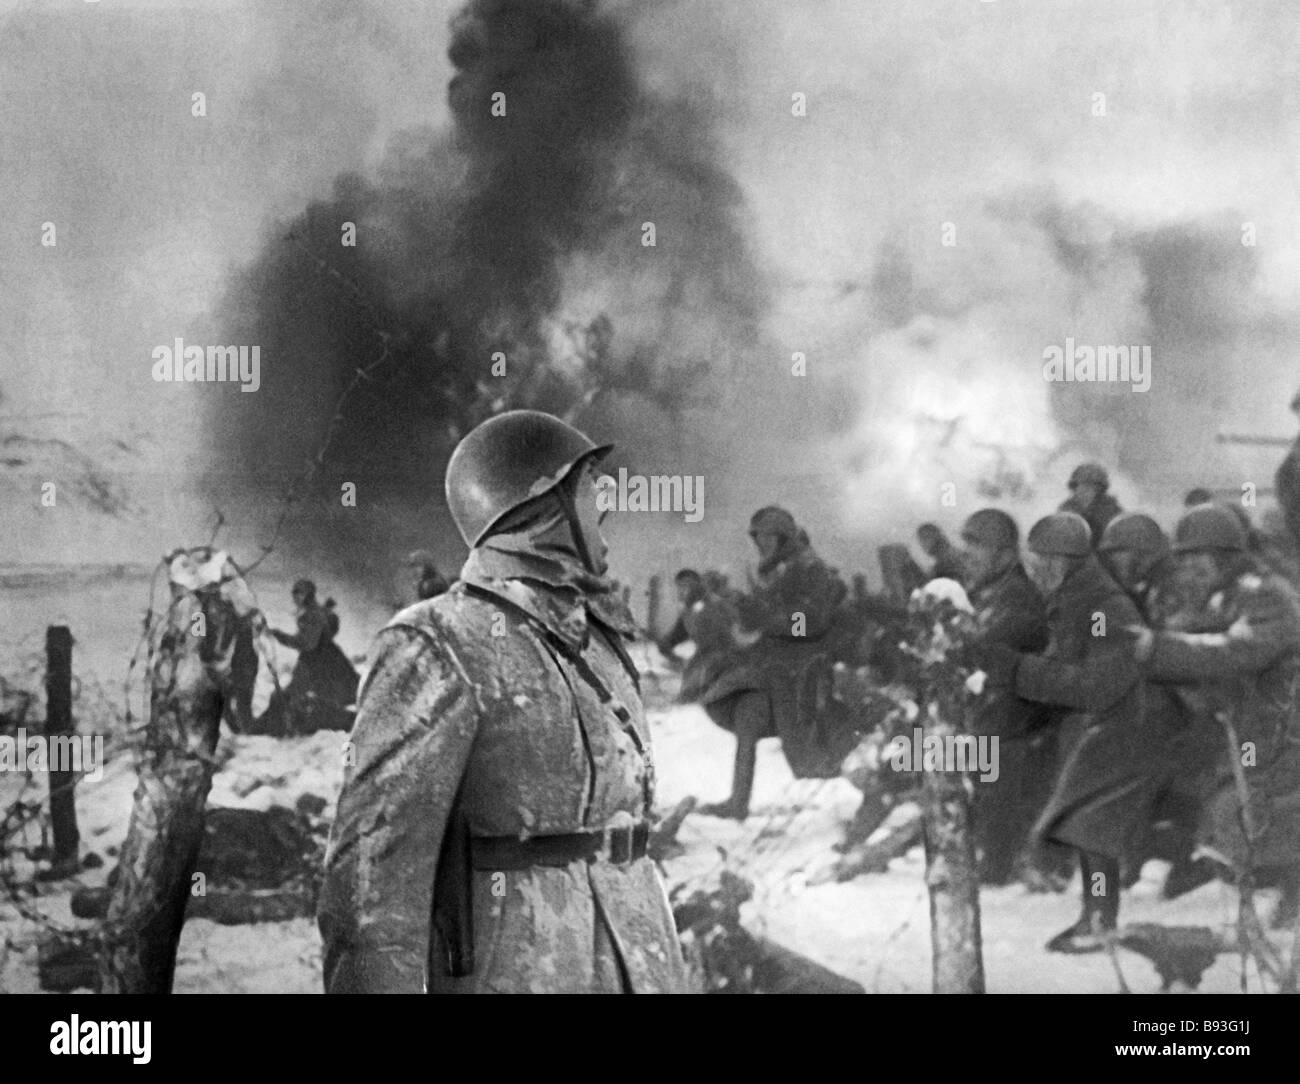 the battle of stalingrad led to a The battle of stalingrad, between germany and the soviet union, is considered not only the most important in world war ii, but one of the most important in military history the battle proved to be decisive for the soviet union and fundamentally changed altered the course of the war.